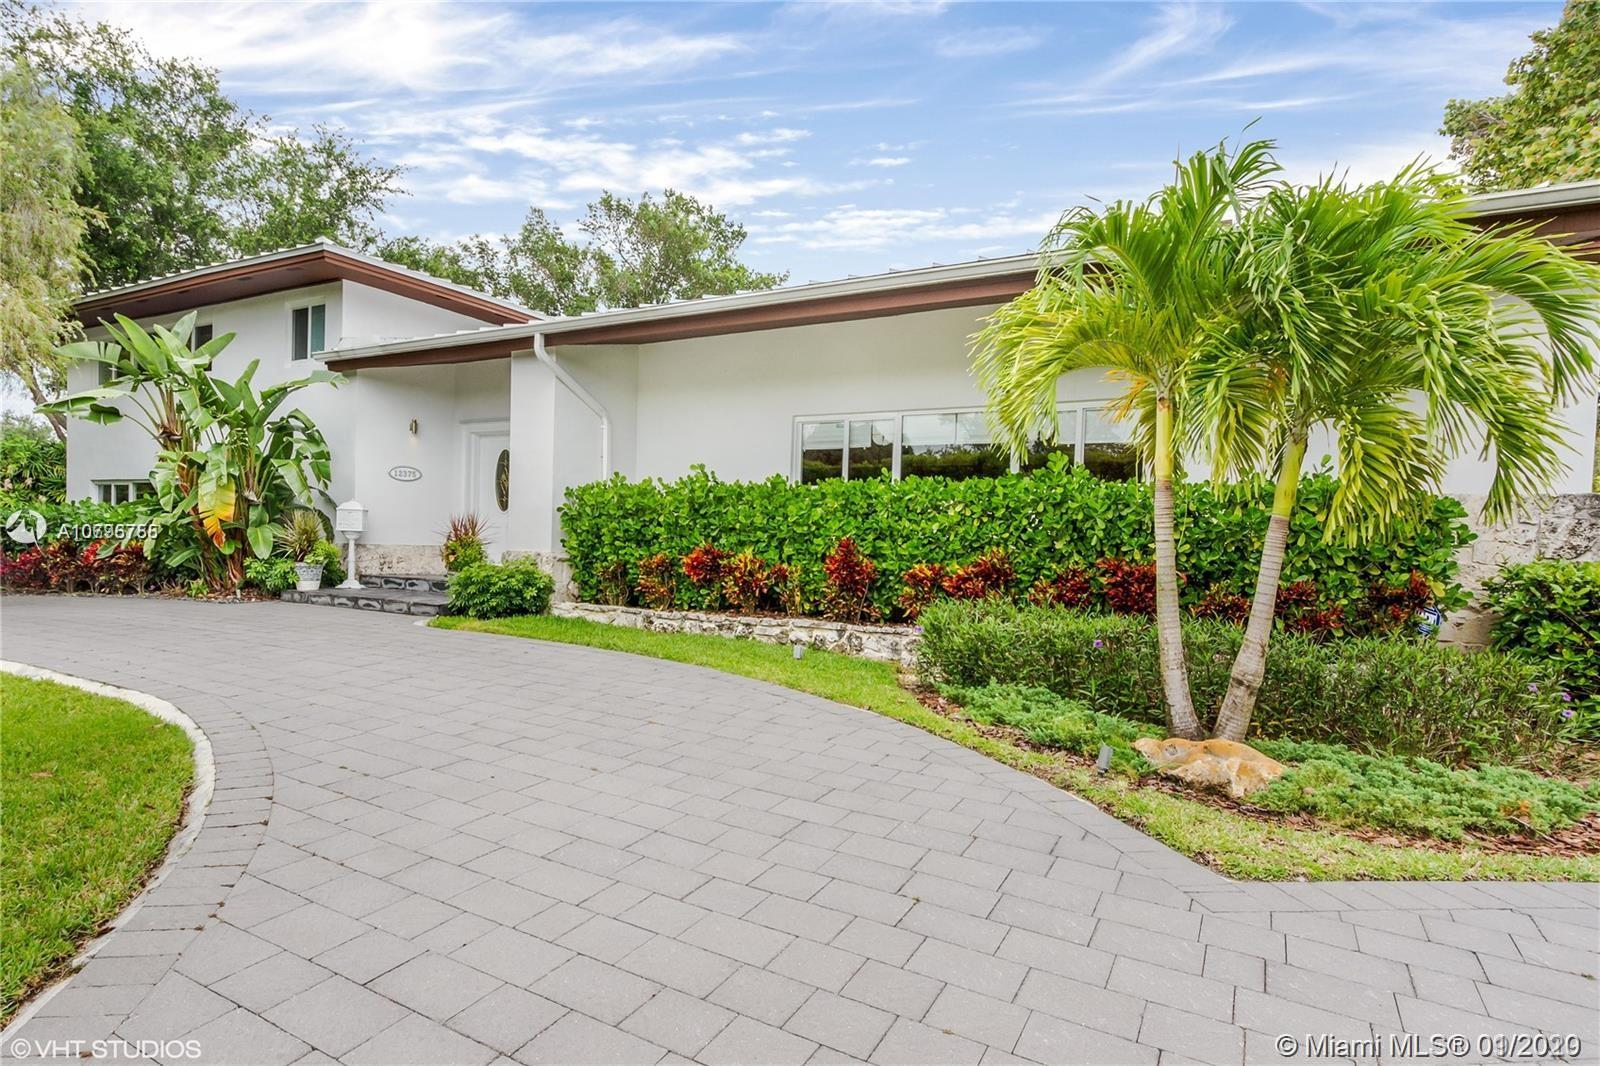 12375 SW 69th Pl, Coral Gables in Miami-dade County County, FL 33156 Home for Sale